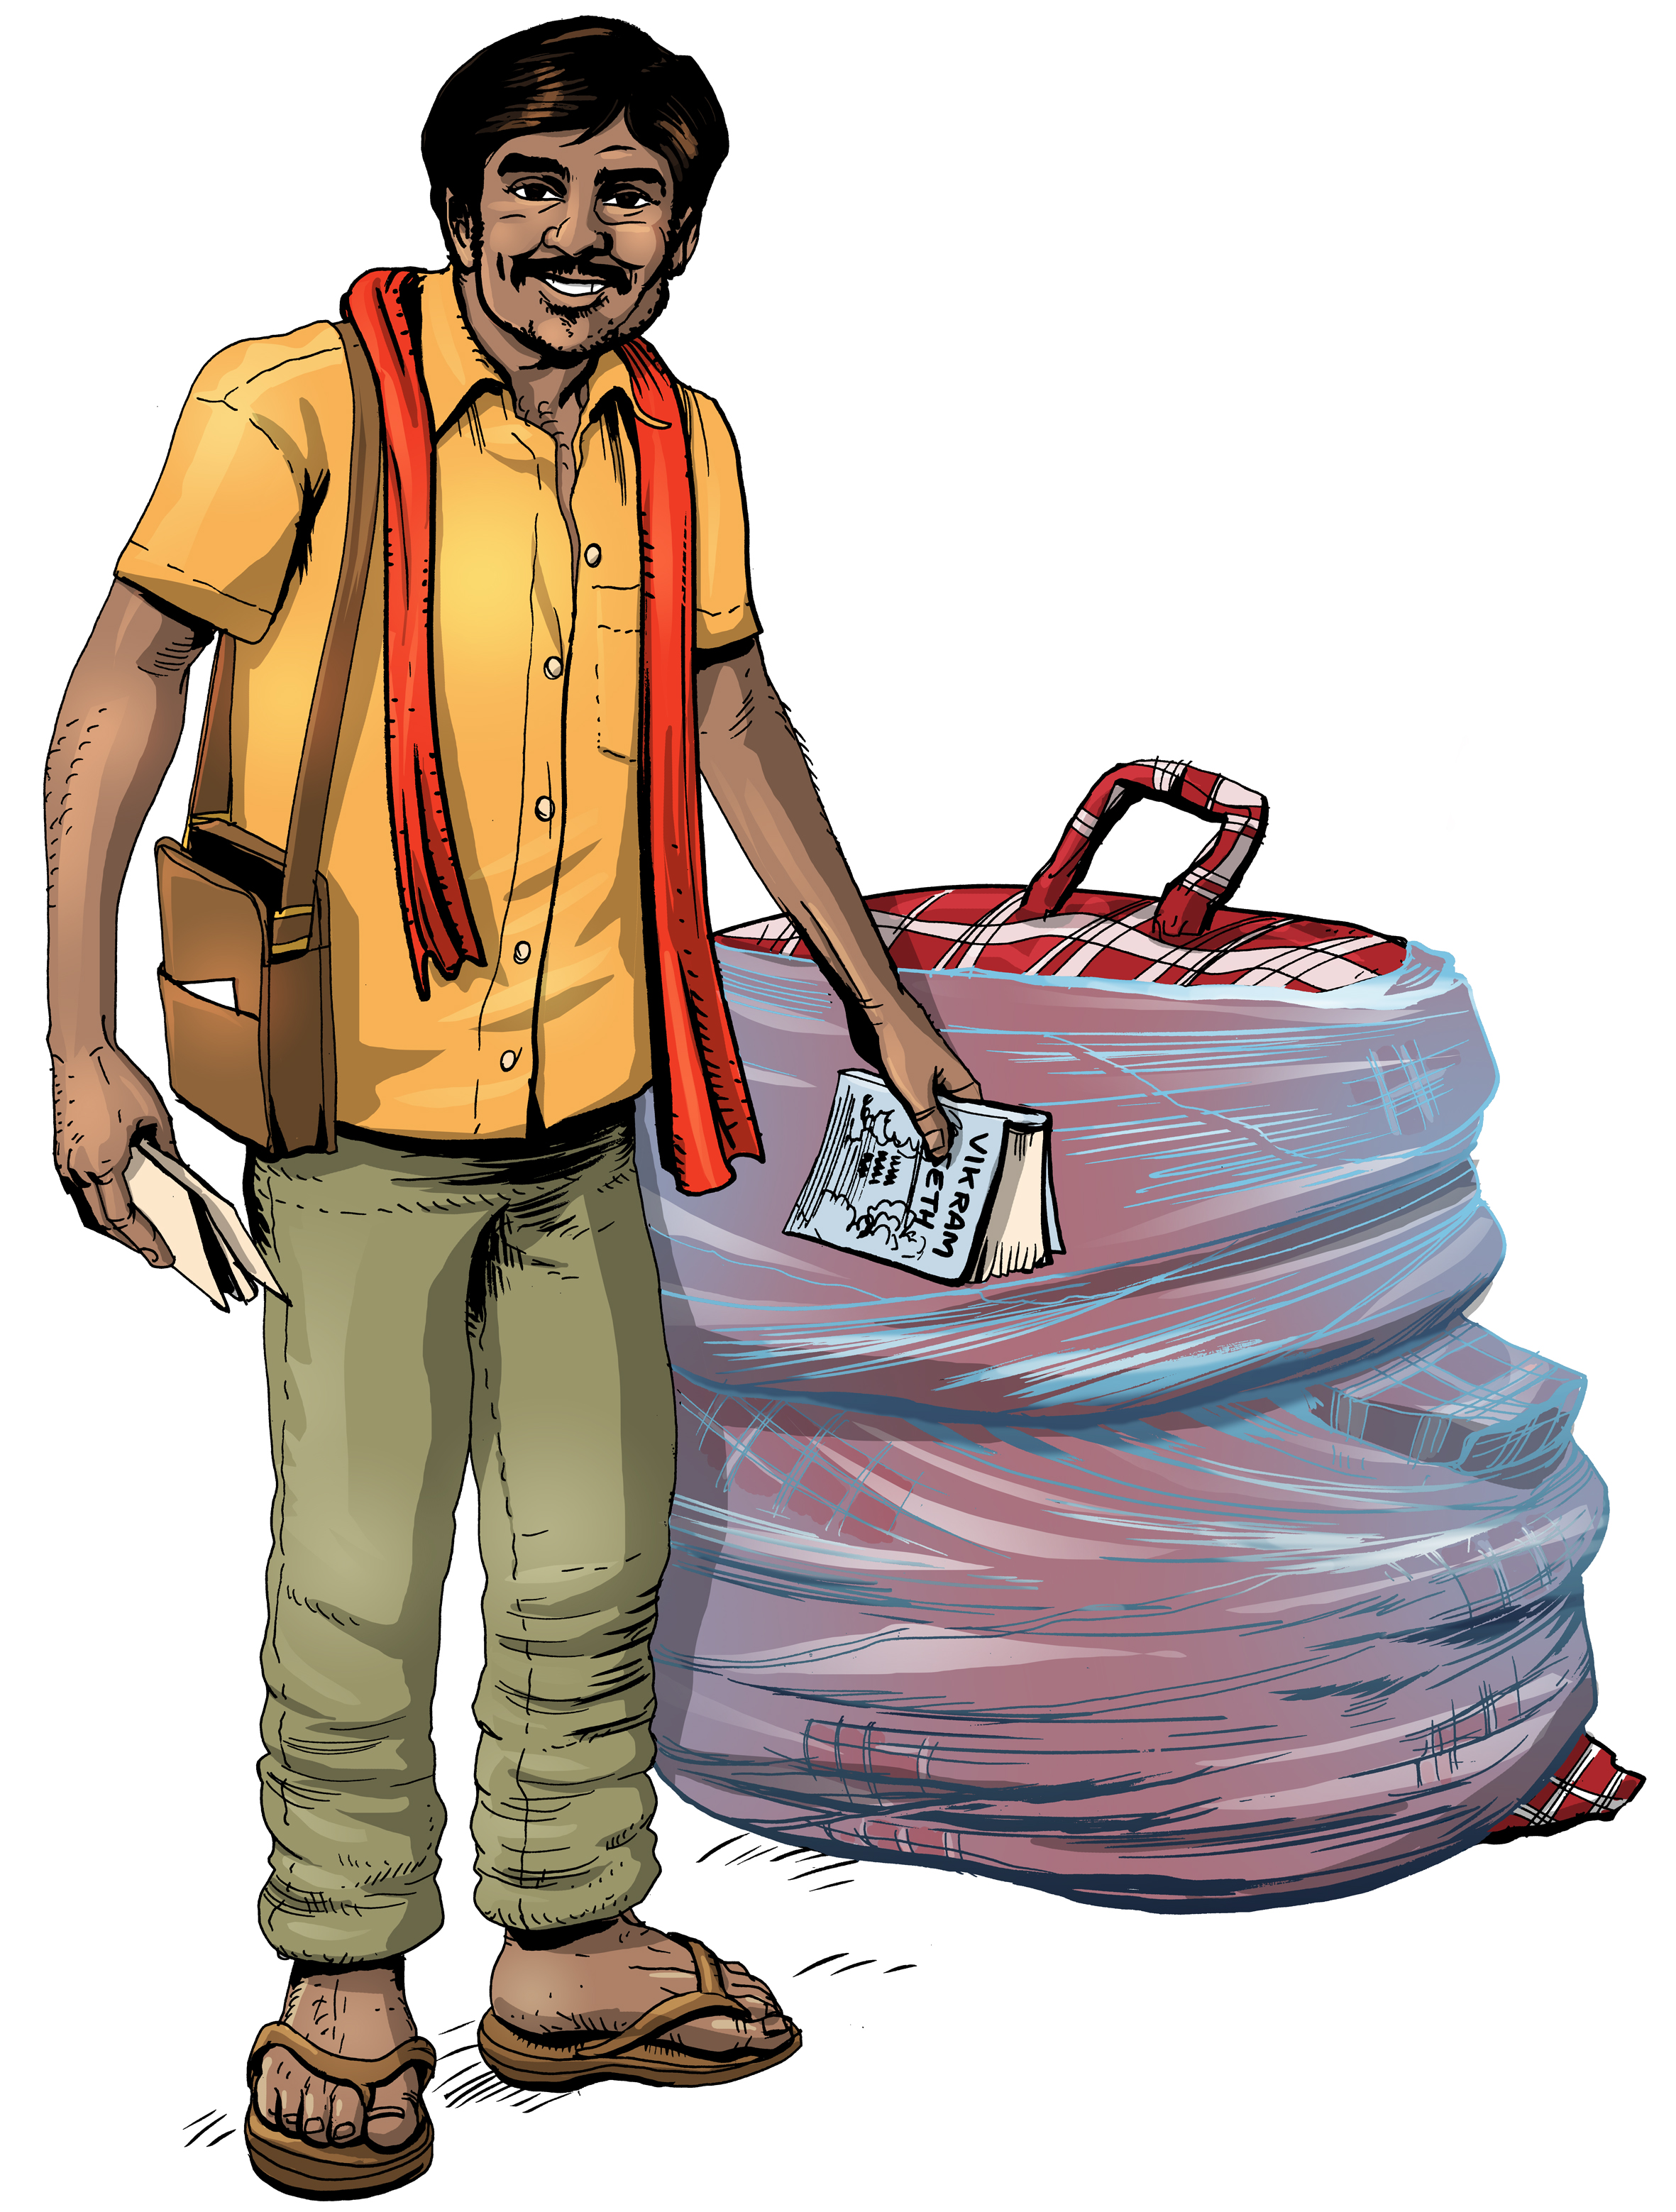 Indian, low-income traveller illustration.